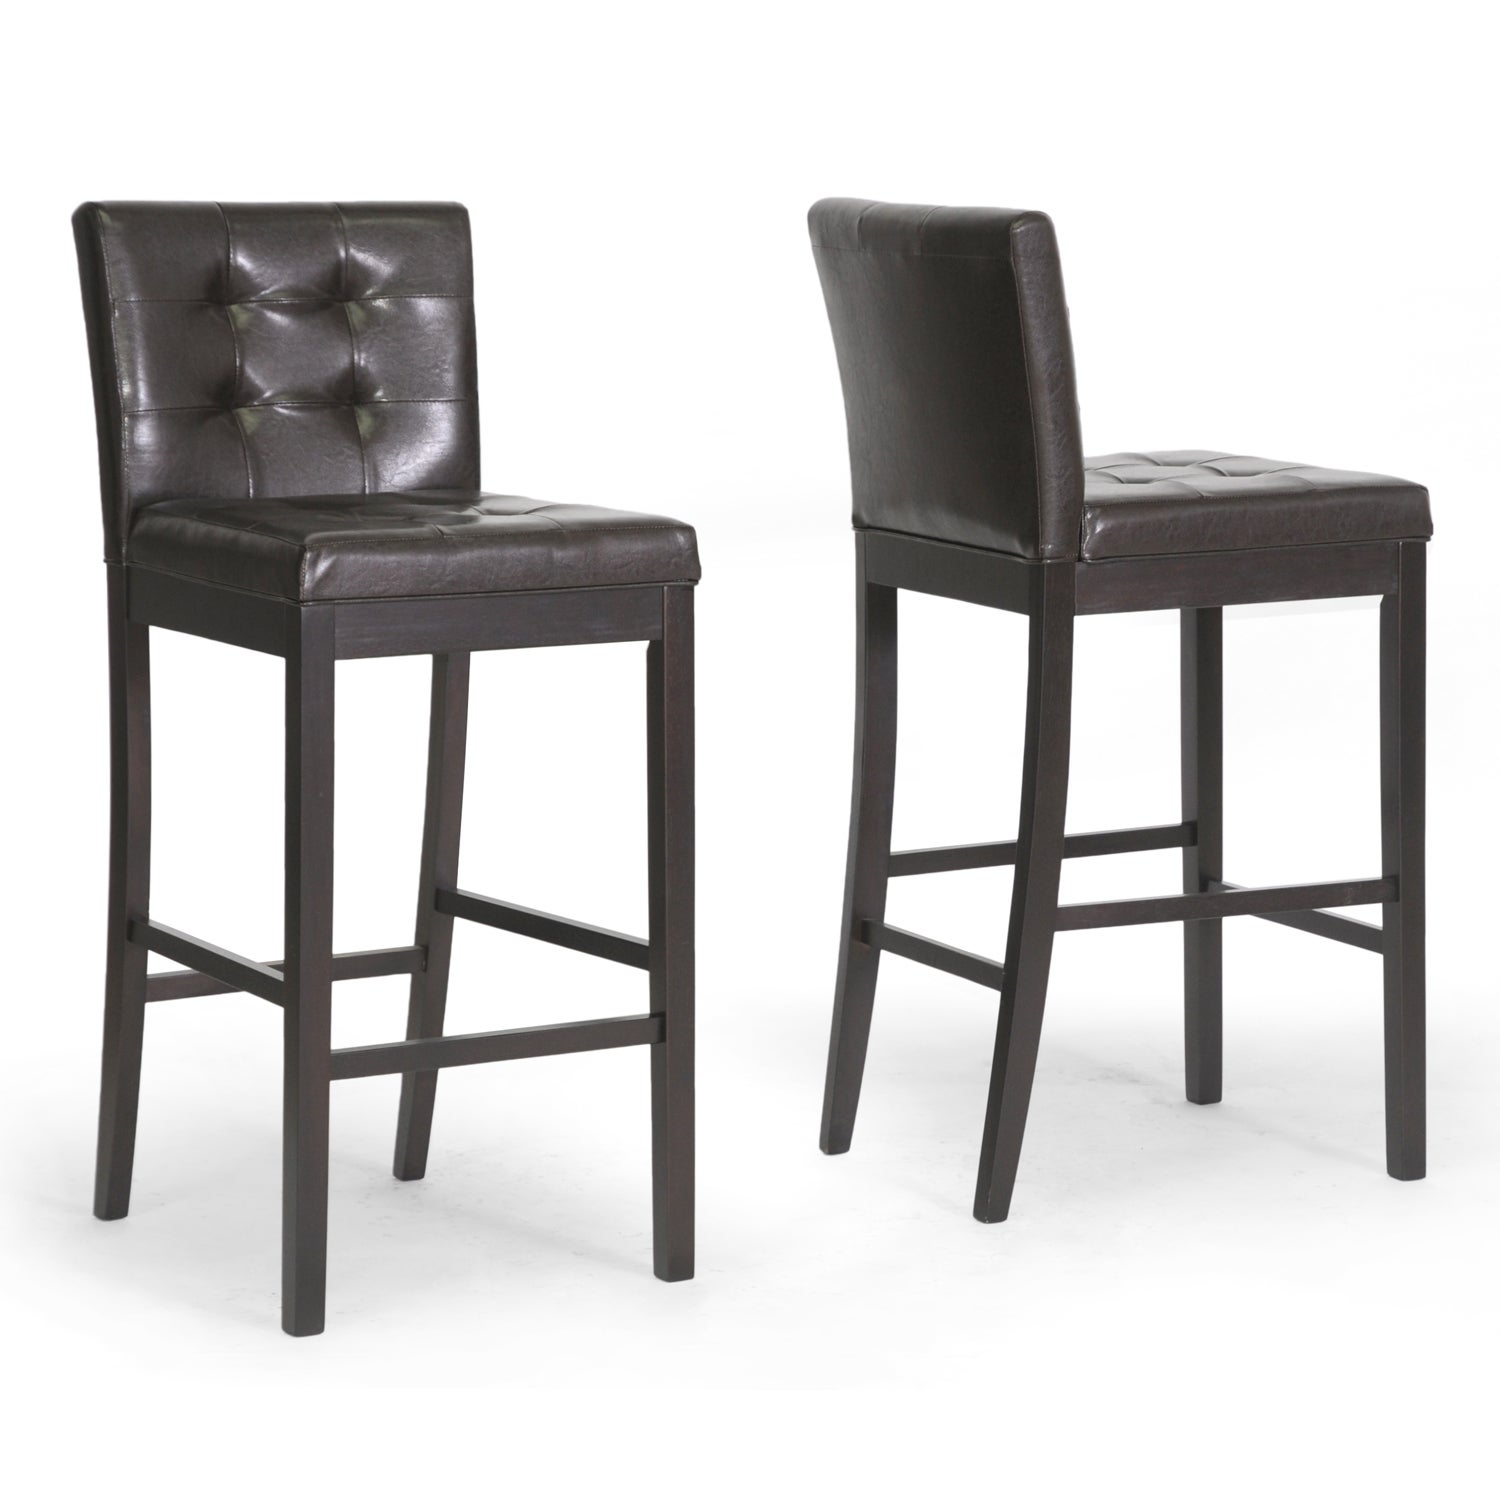 Baxton Studio Prospect Brown Modern Bar Stool (Set of 2)